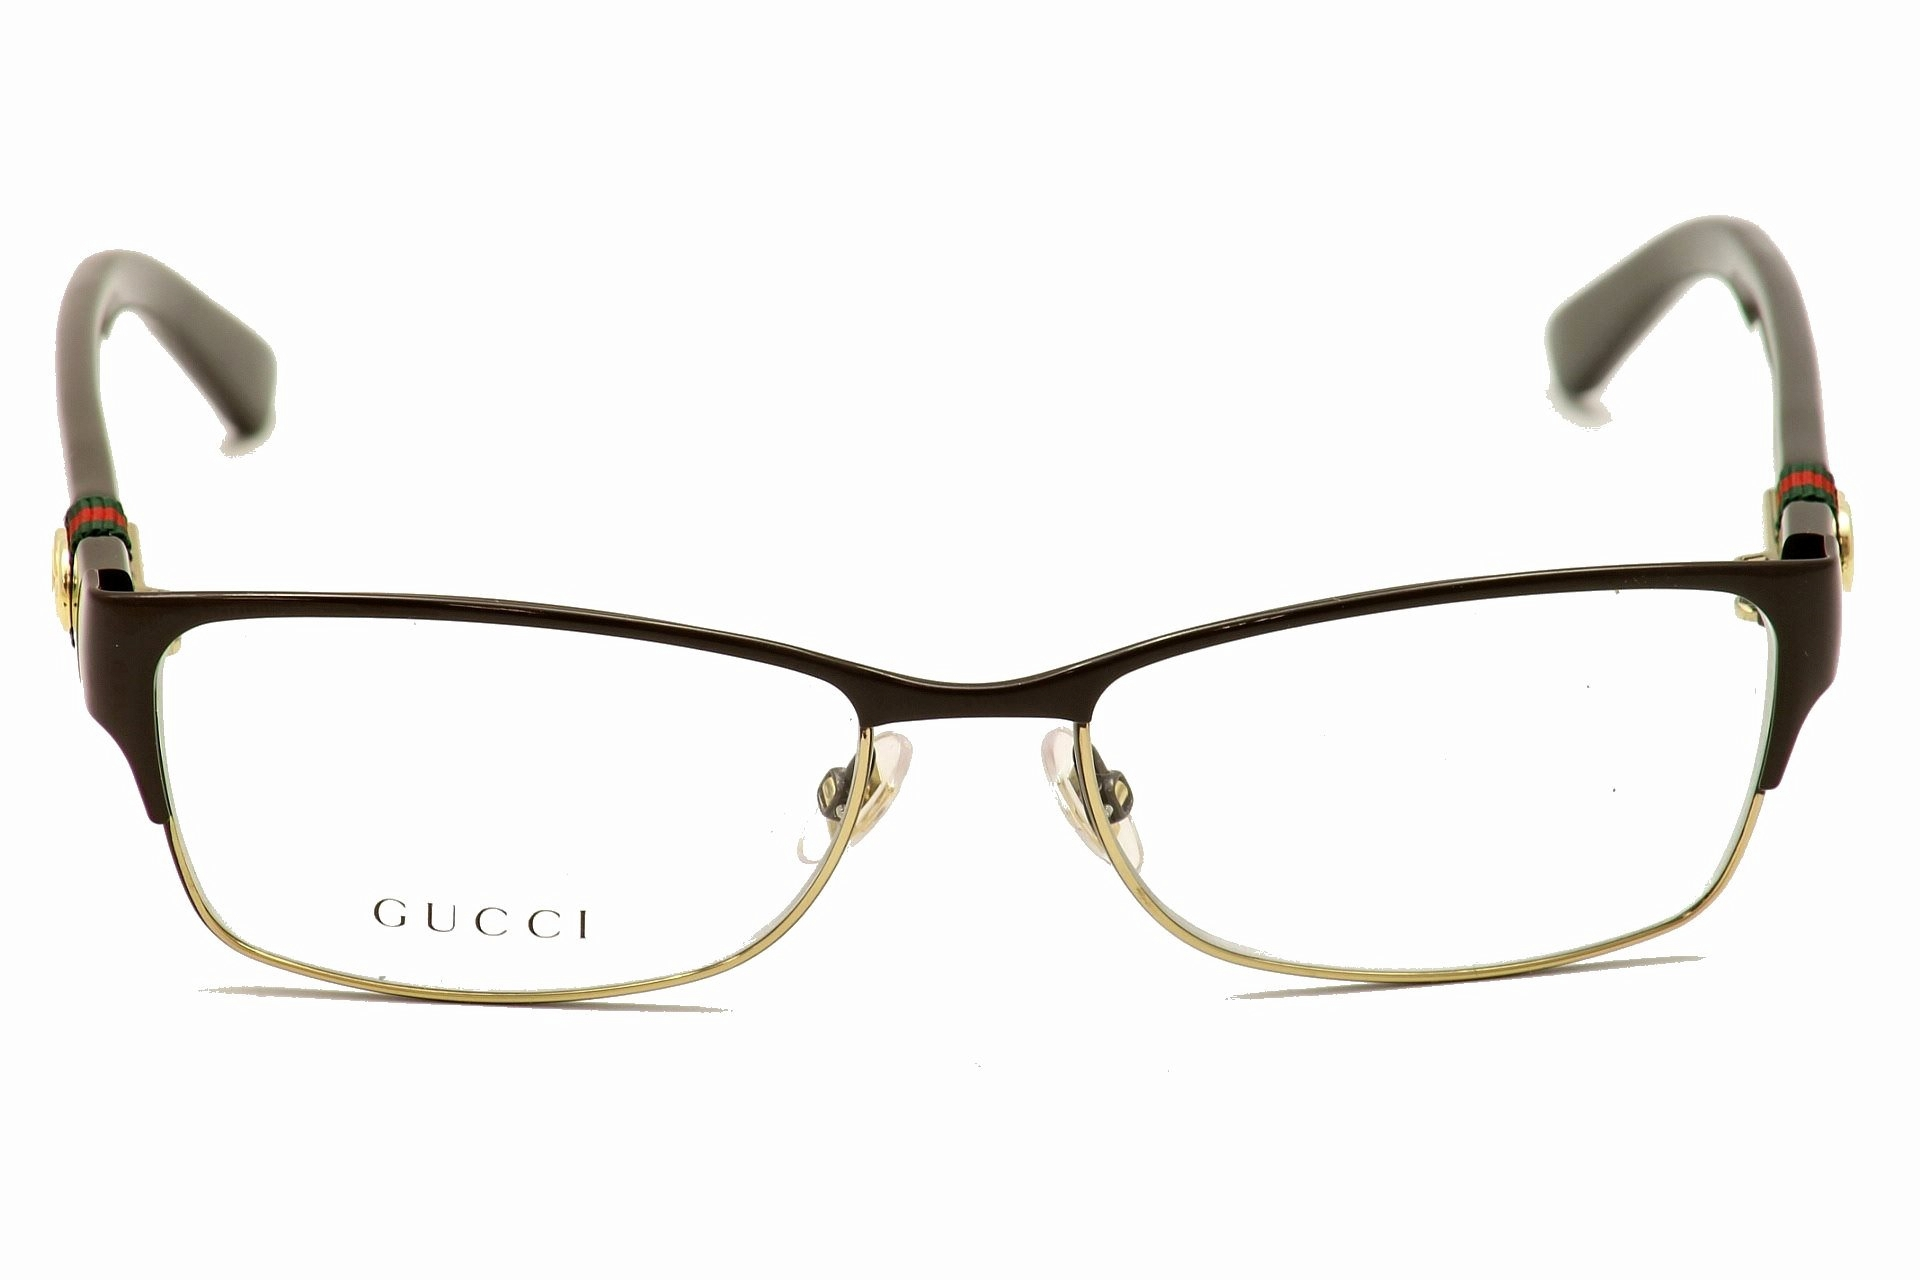 gucci womens eyeglasses 4244 full rim optical frame by gucci